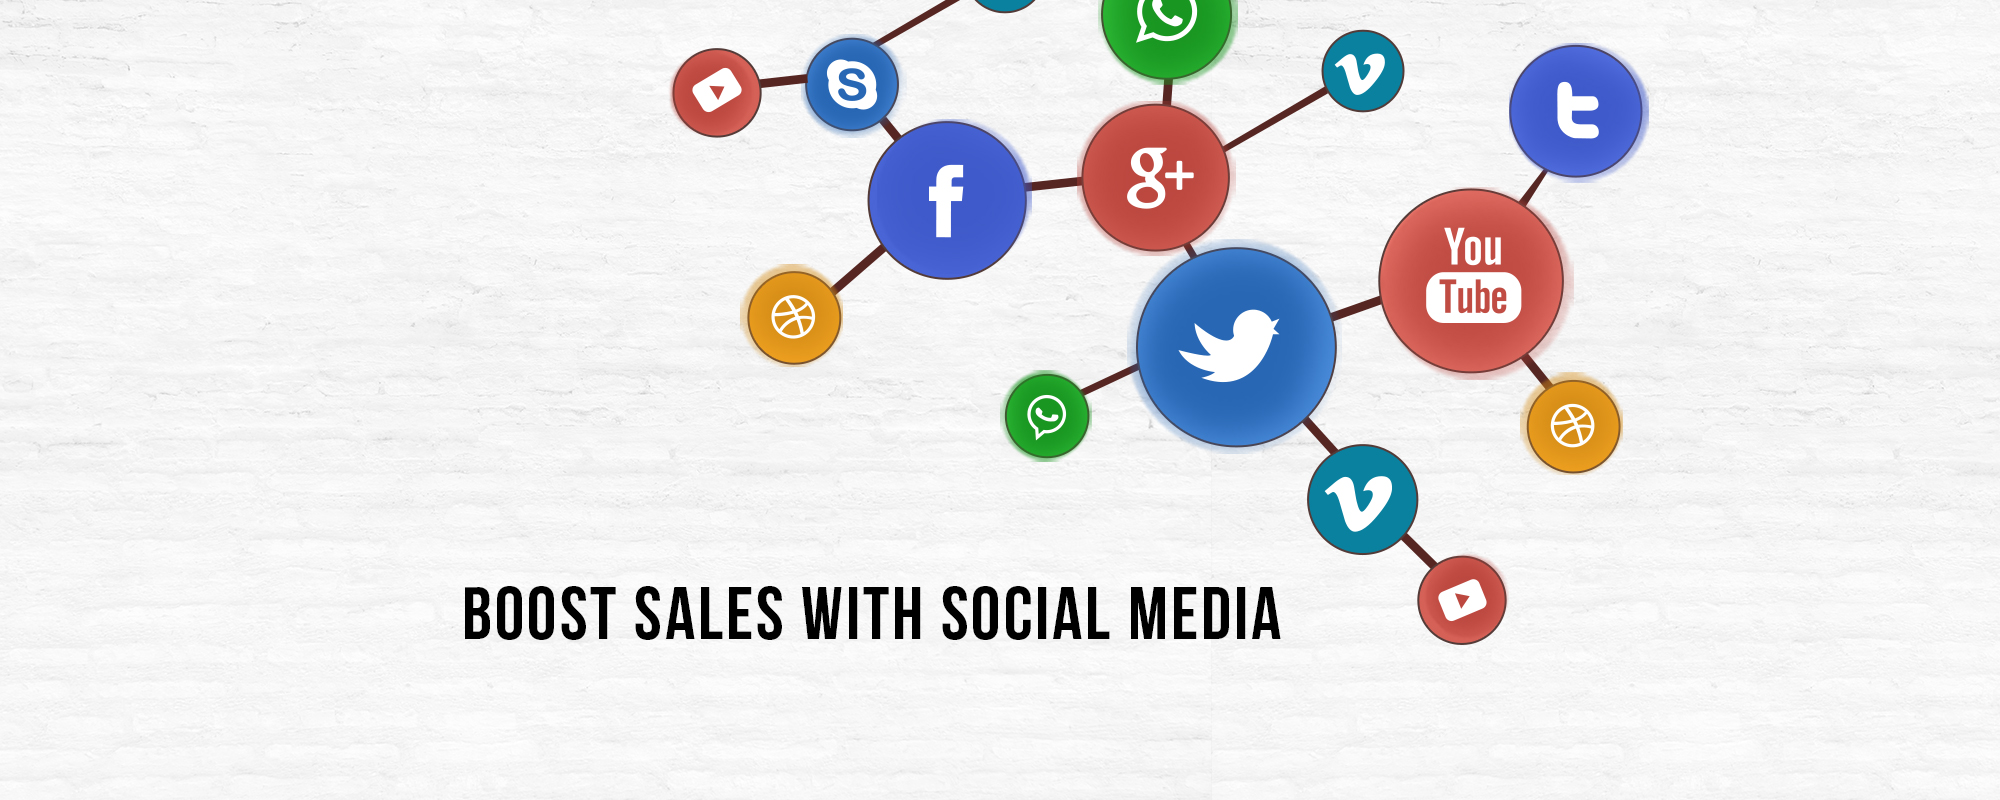 Improve-sales-using-Social-Media-Marketing.jpg